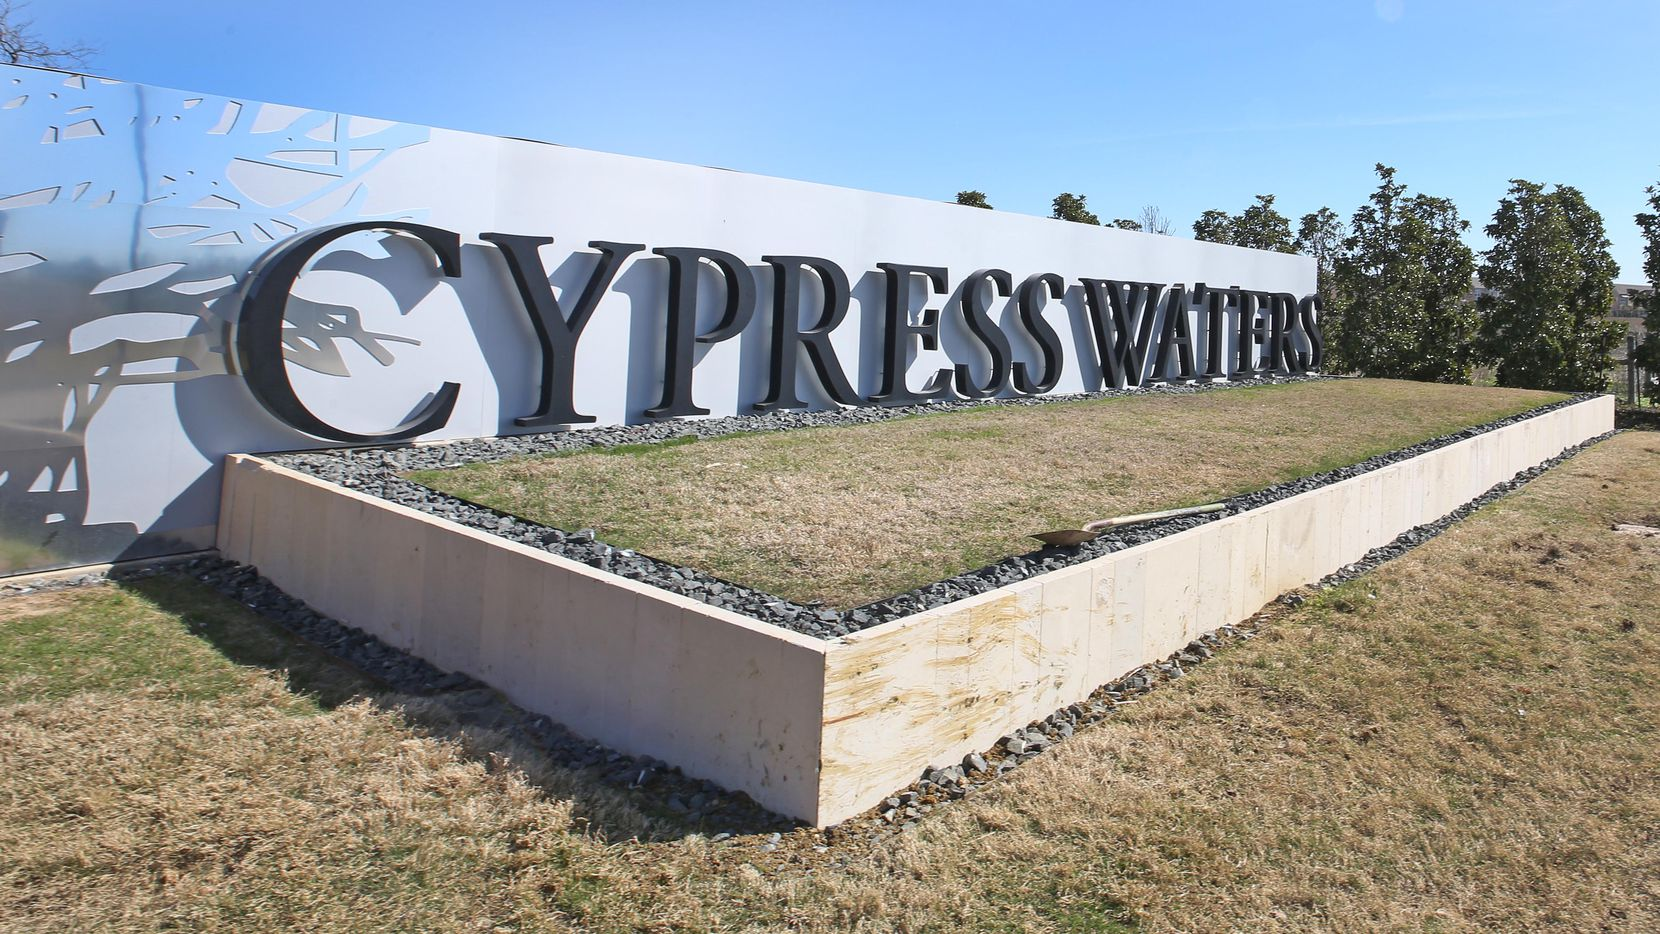 More than 1,400 apartments have so far been built at Cypress Waters, which is near LBJ Freeway and Belt Line Road northwest of Dallas.